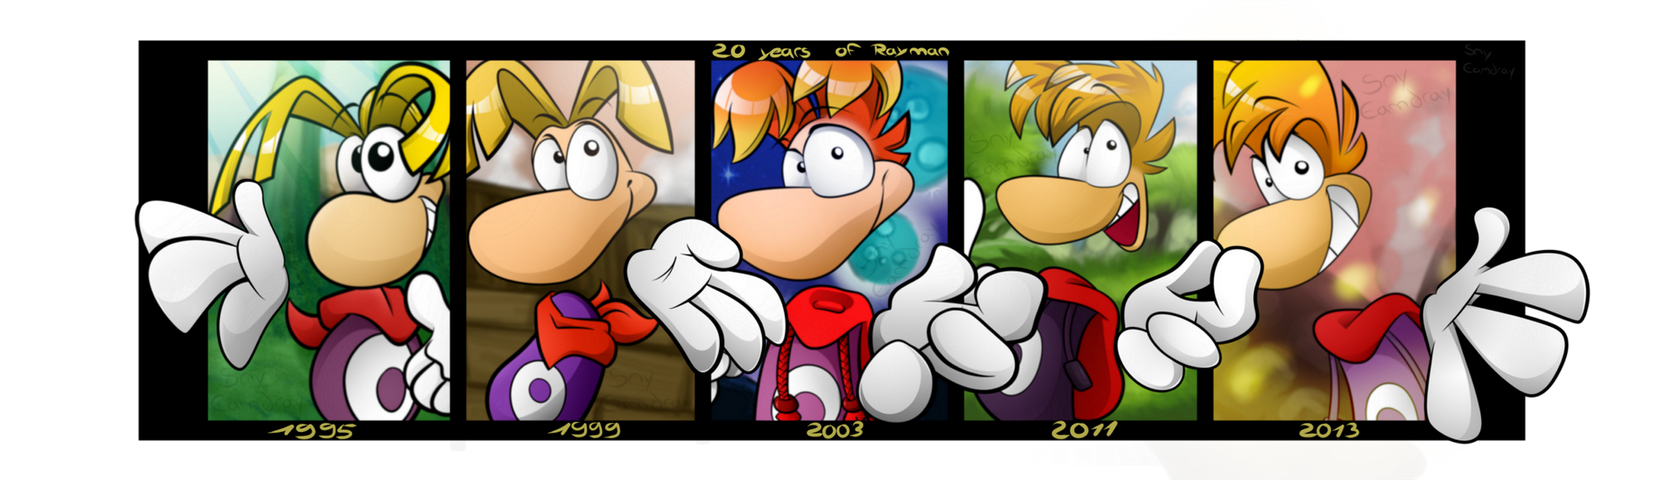 Rayman's 20th ducking anniversary! by Sny--Eamdray